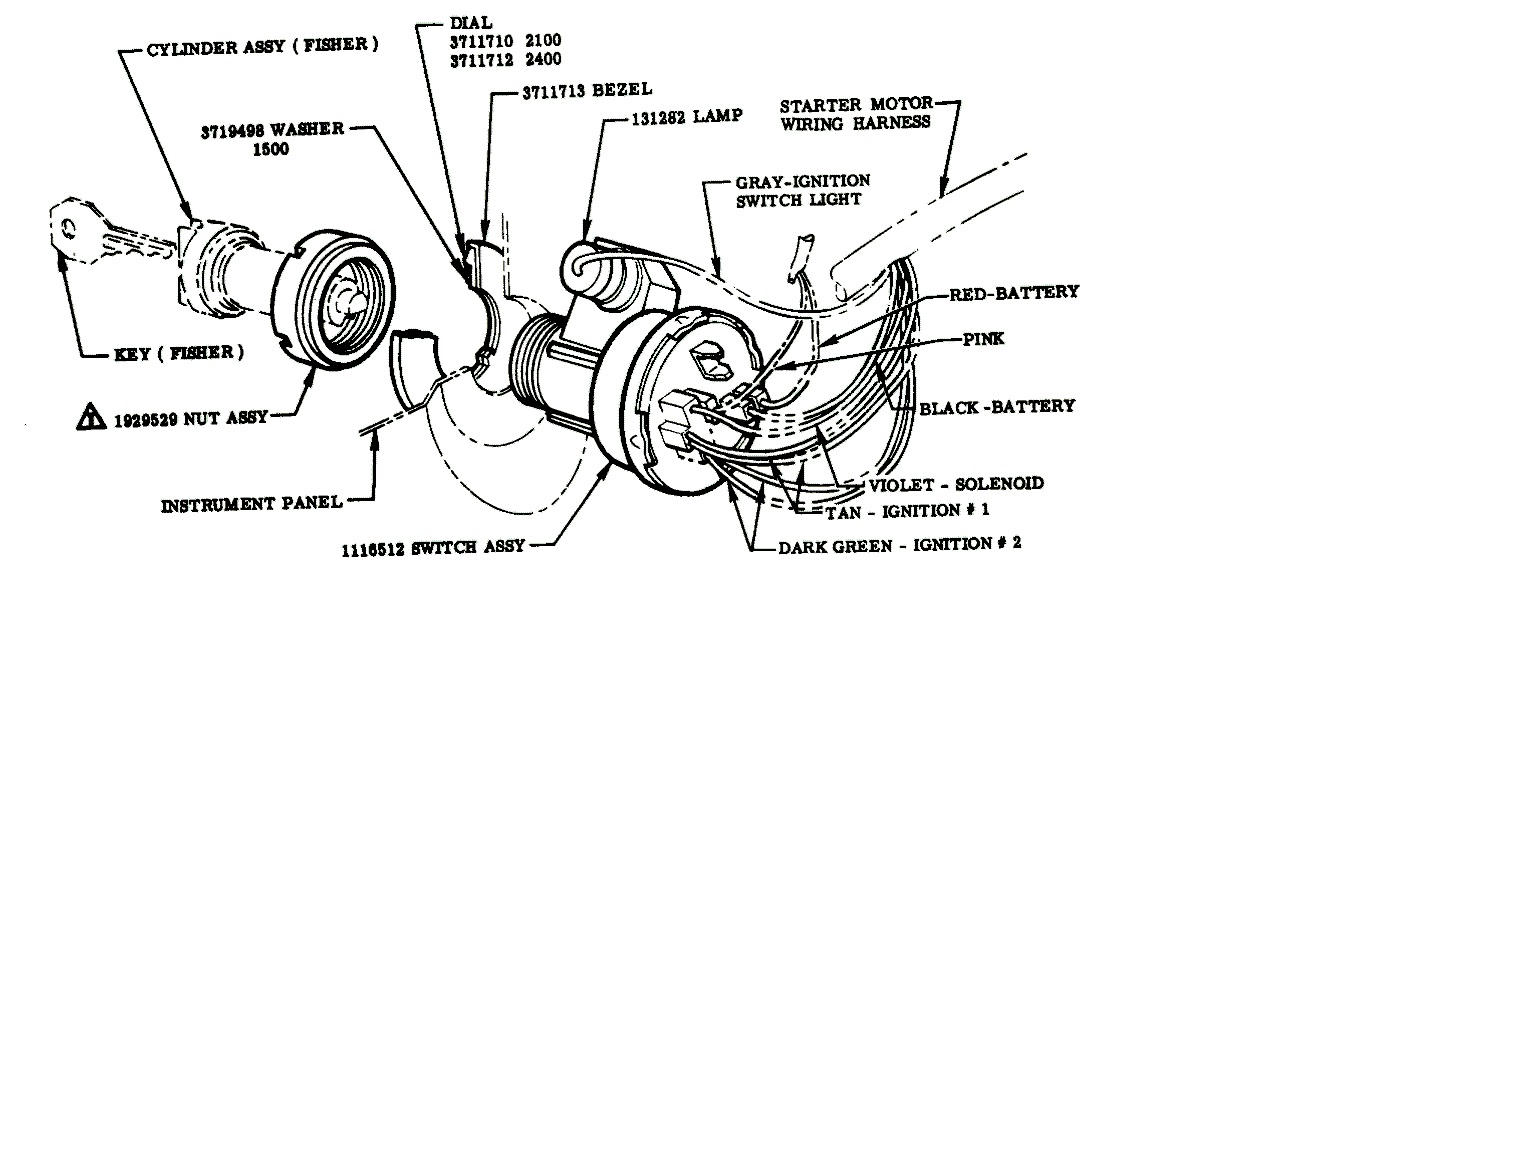 1971 Chevy Blazer Wiring Diagram Simple Guide About Gm Column Further Truck Steering Technical Ignition Switch 1955 2